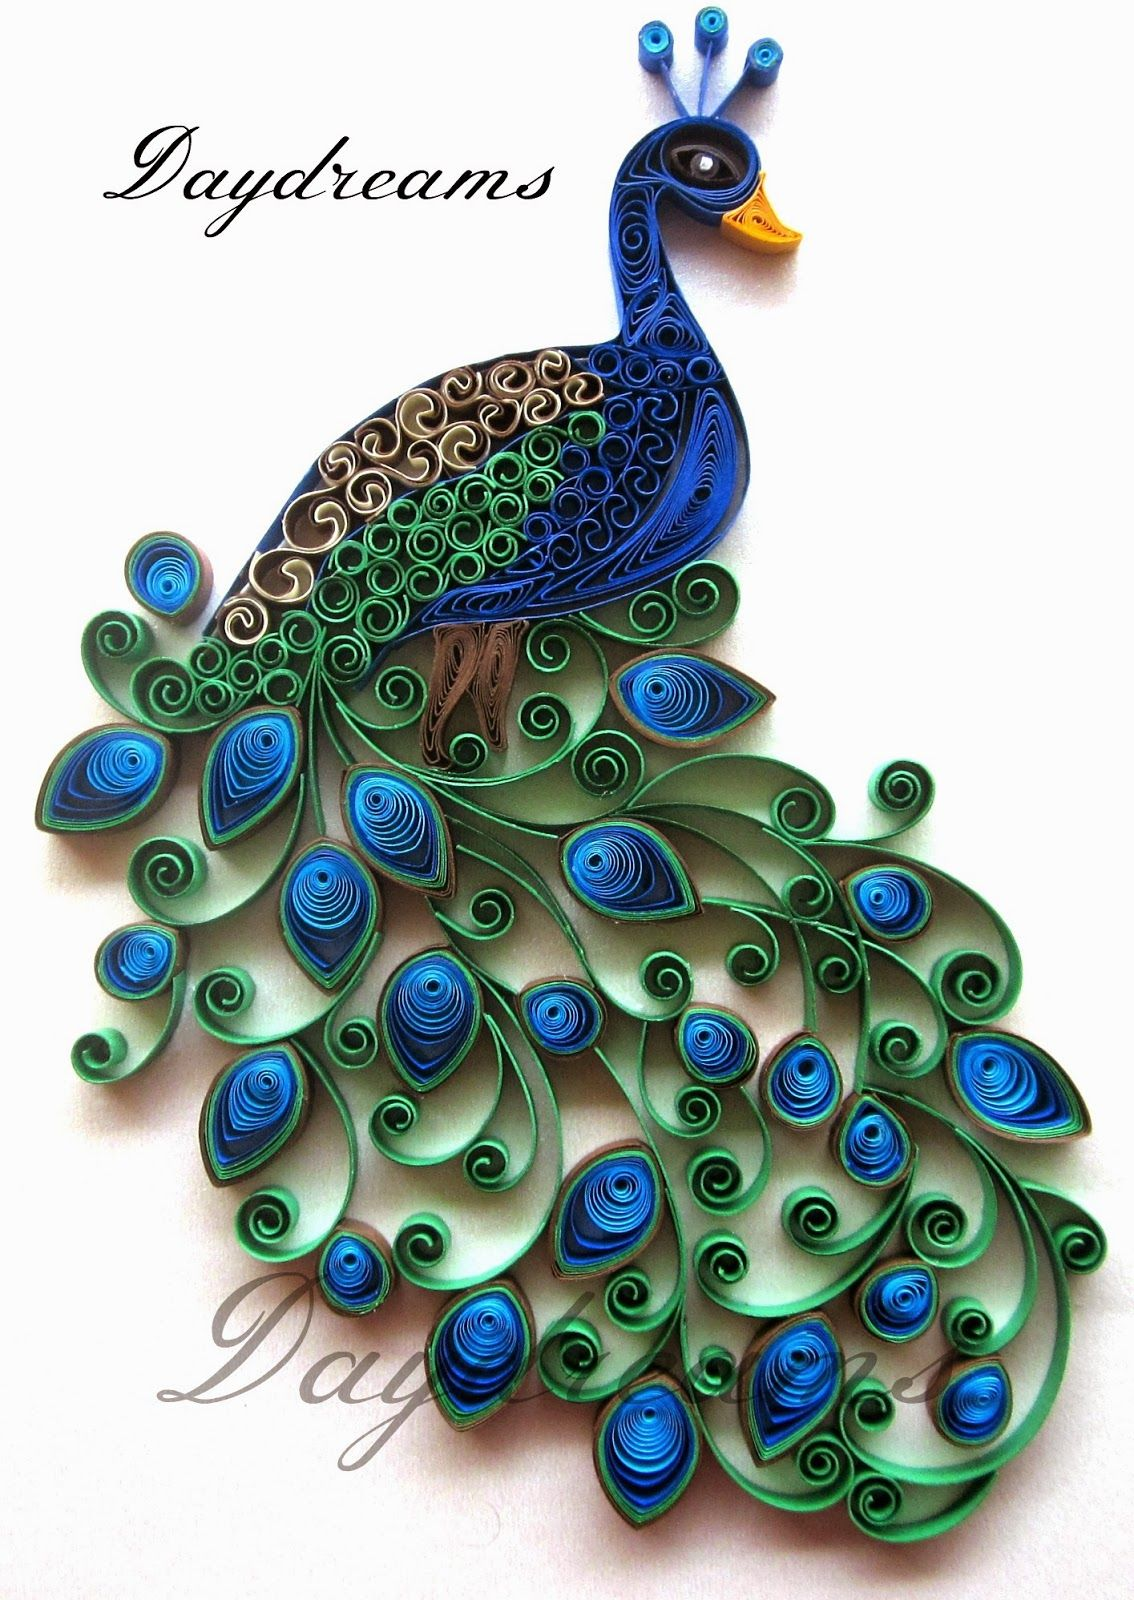 Daydreams quilled peacock embroidery design inspired for Quilling designs